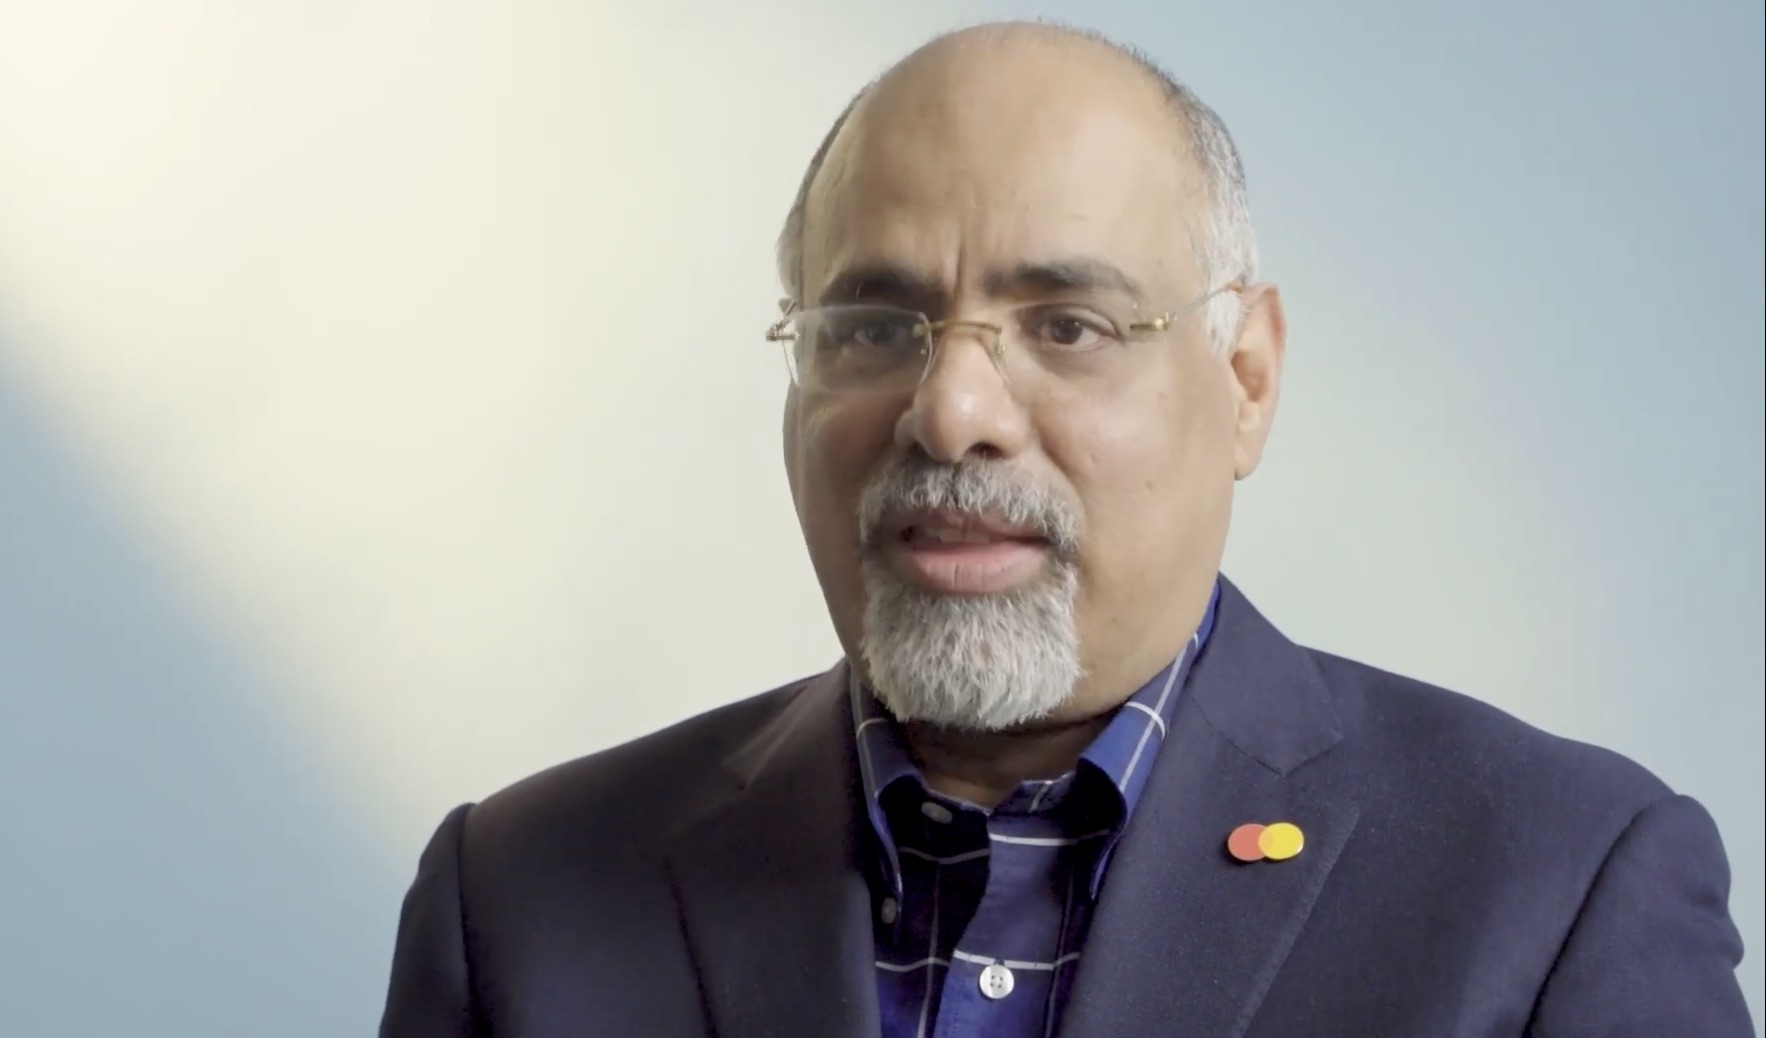 Raja Rajamannar (Mastercard) est élu Global Marketer of the Year